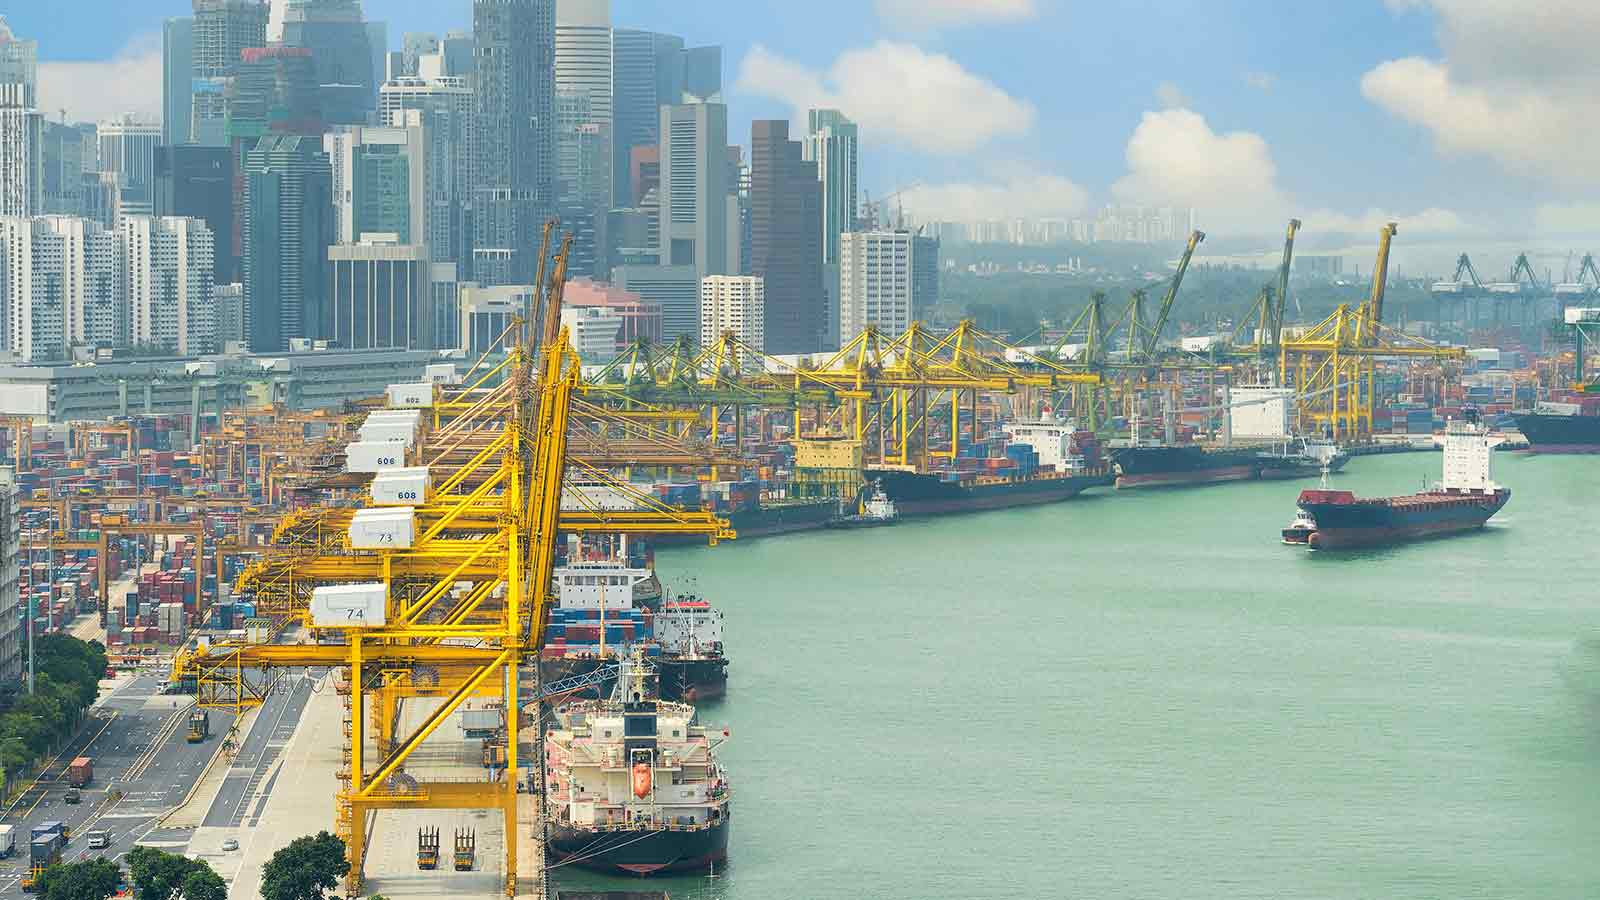 View of a shipping port cityscape.